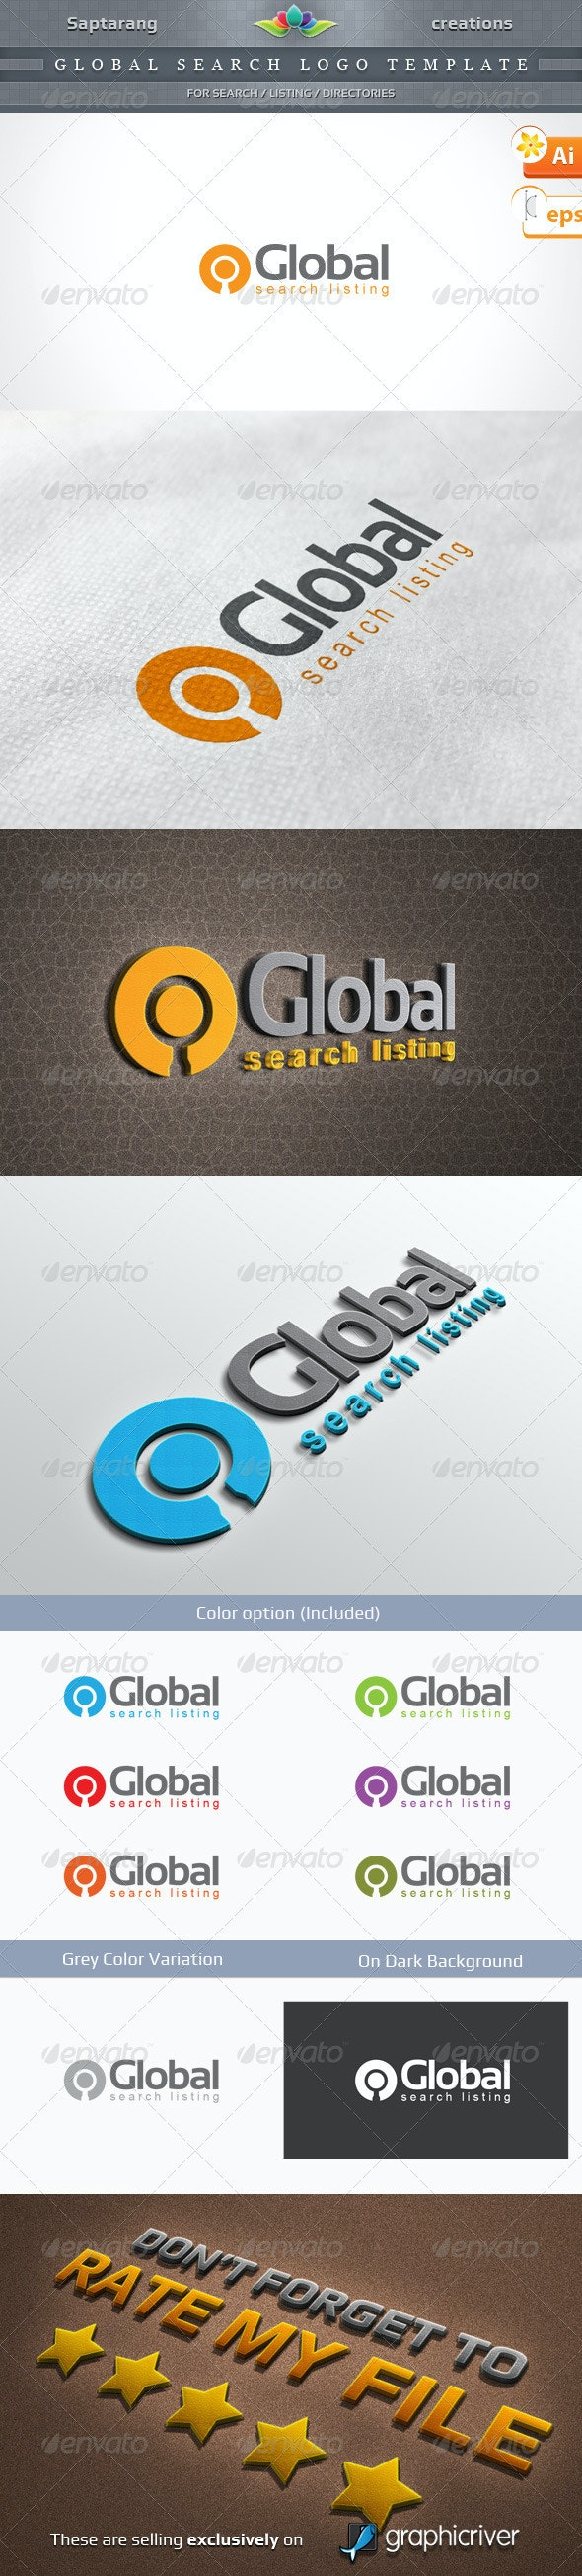 Global Search Listing Logo template - Symbols Logo Templates